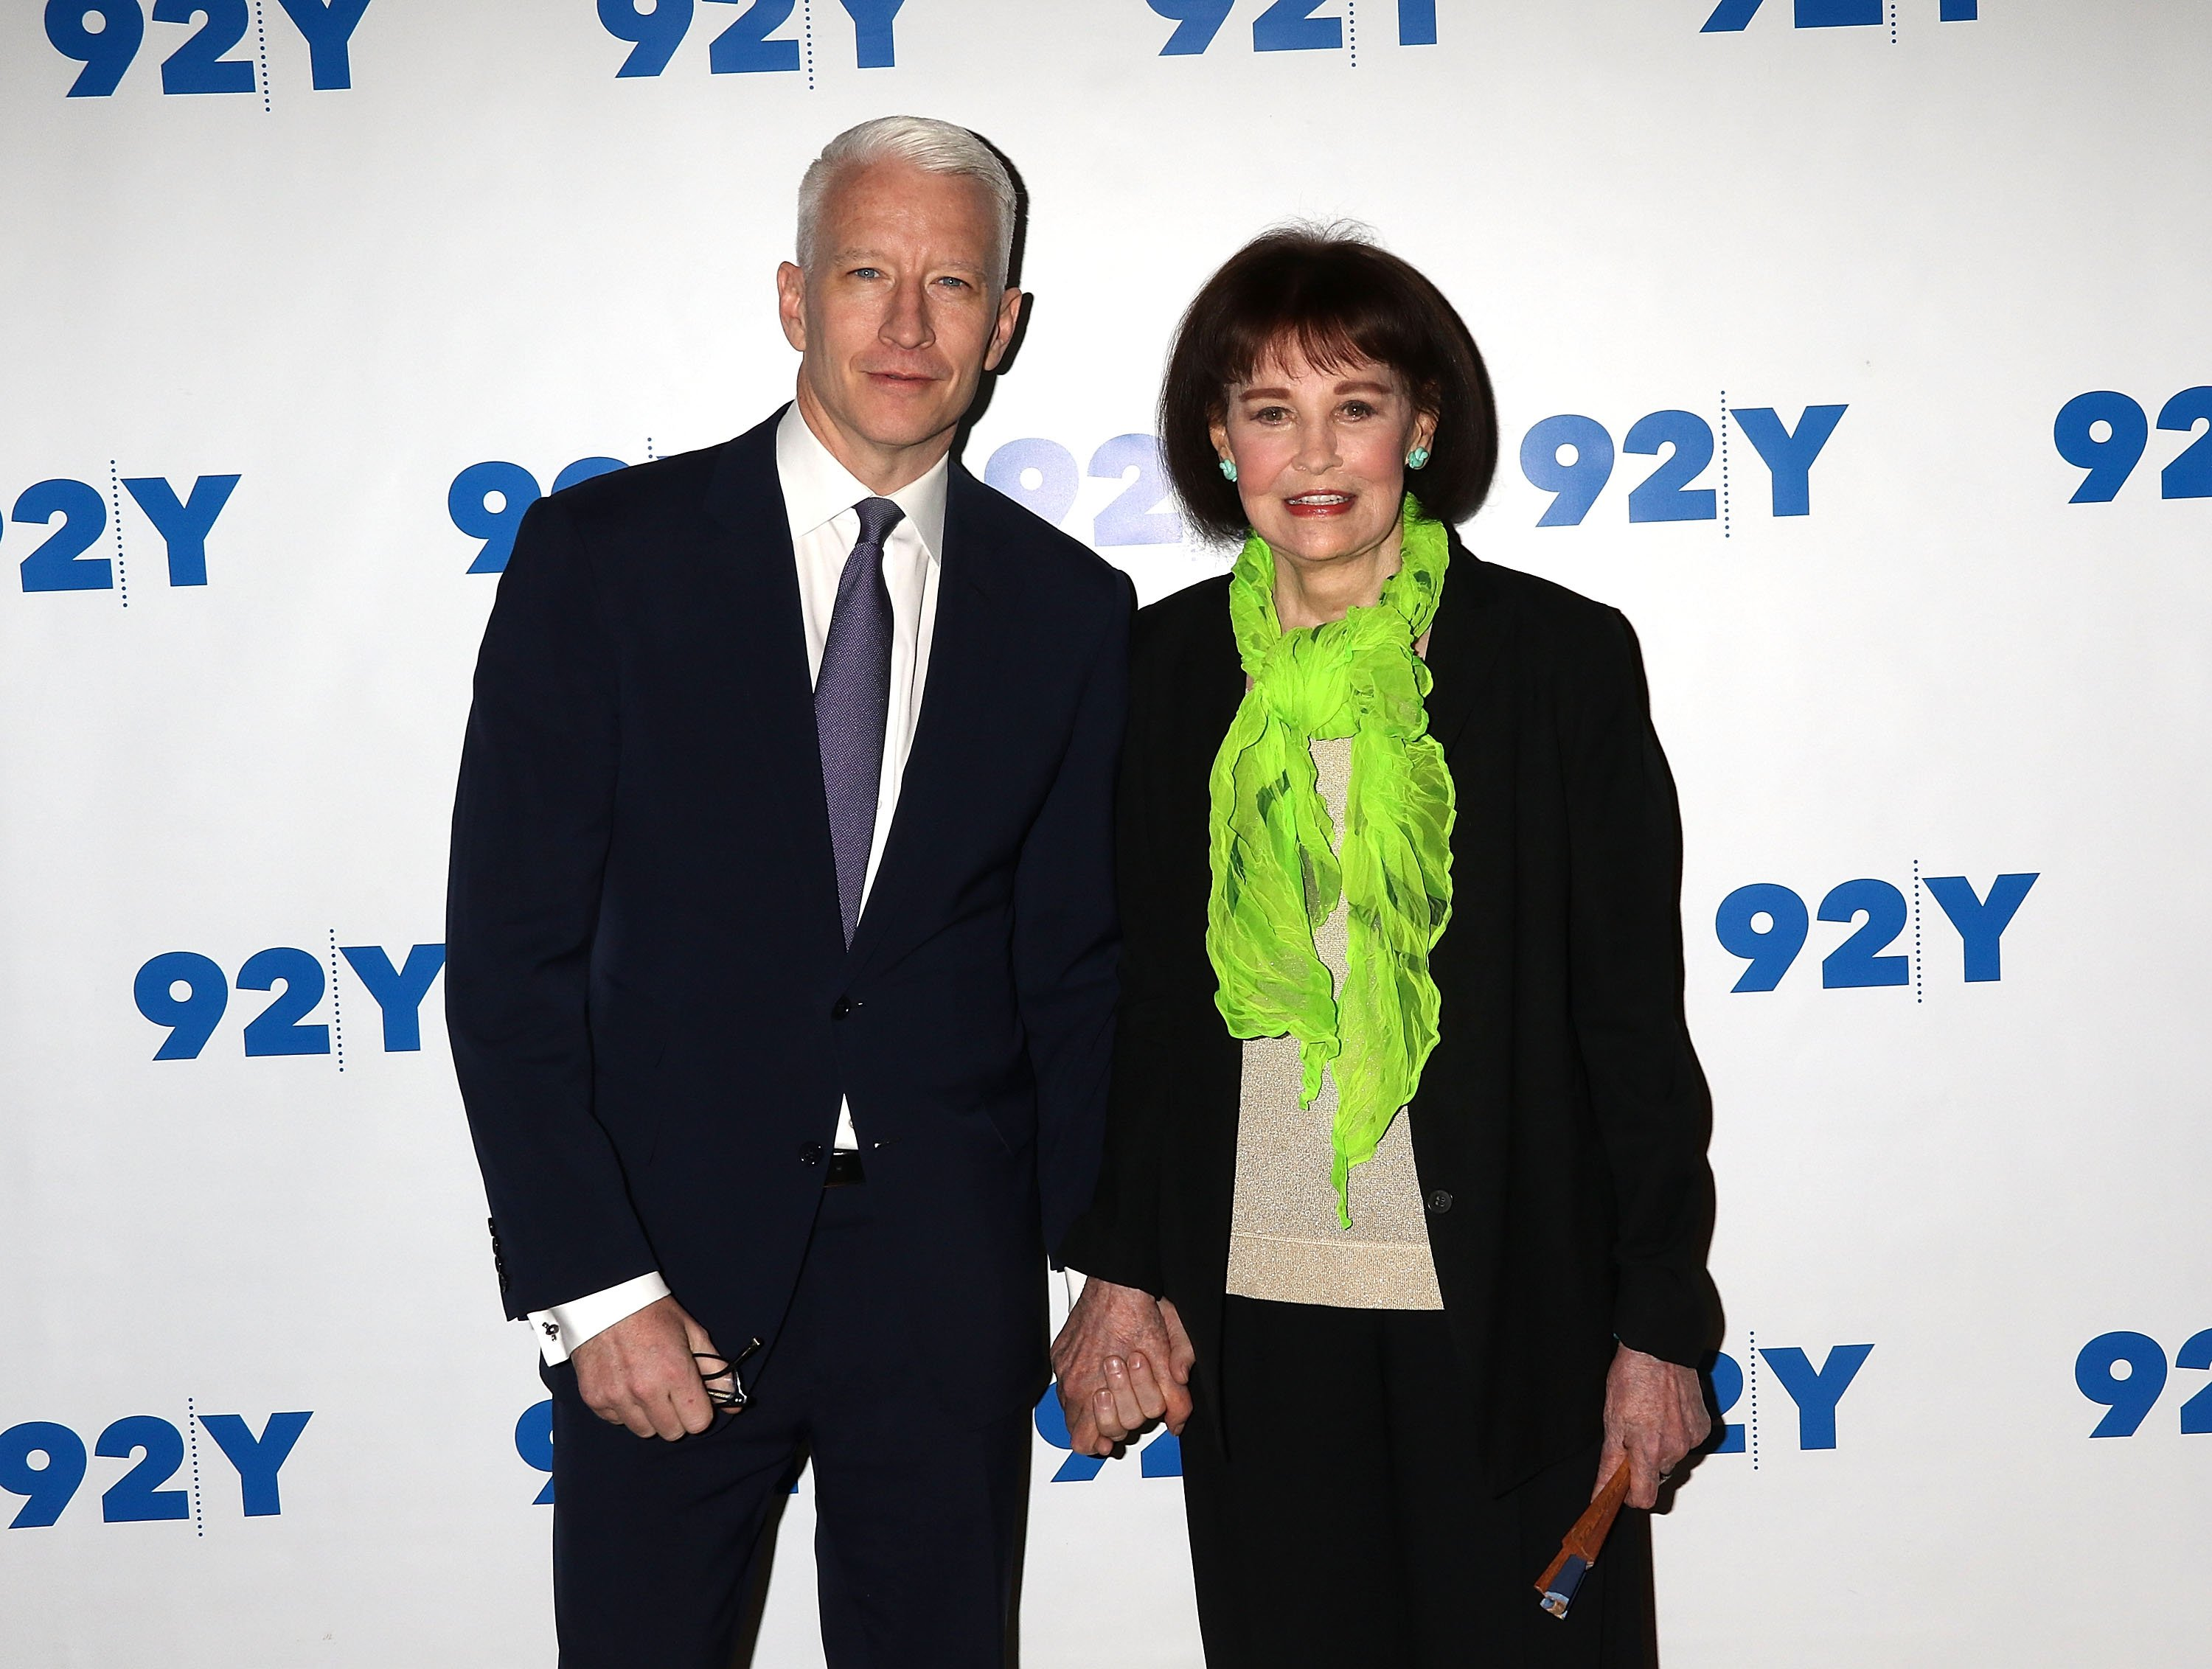 Anderson Cooper and Gloria Vanderbilt at 92nd Street Y on April 14, 2016, in New York City.   Source: Getty Images.